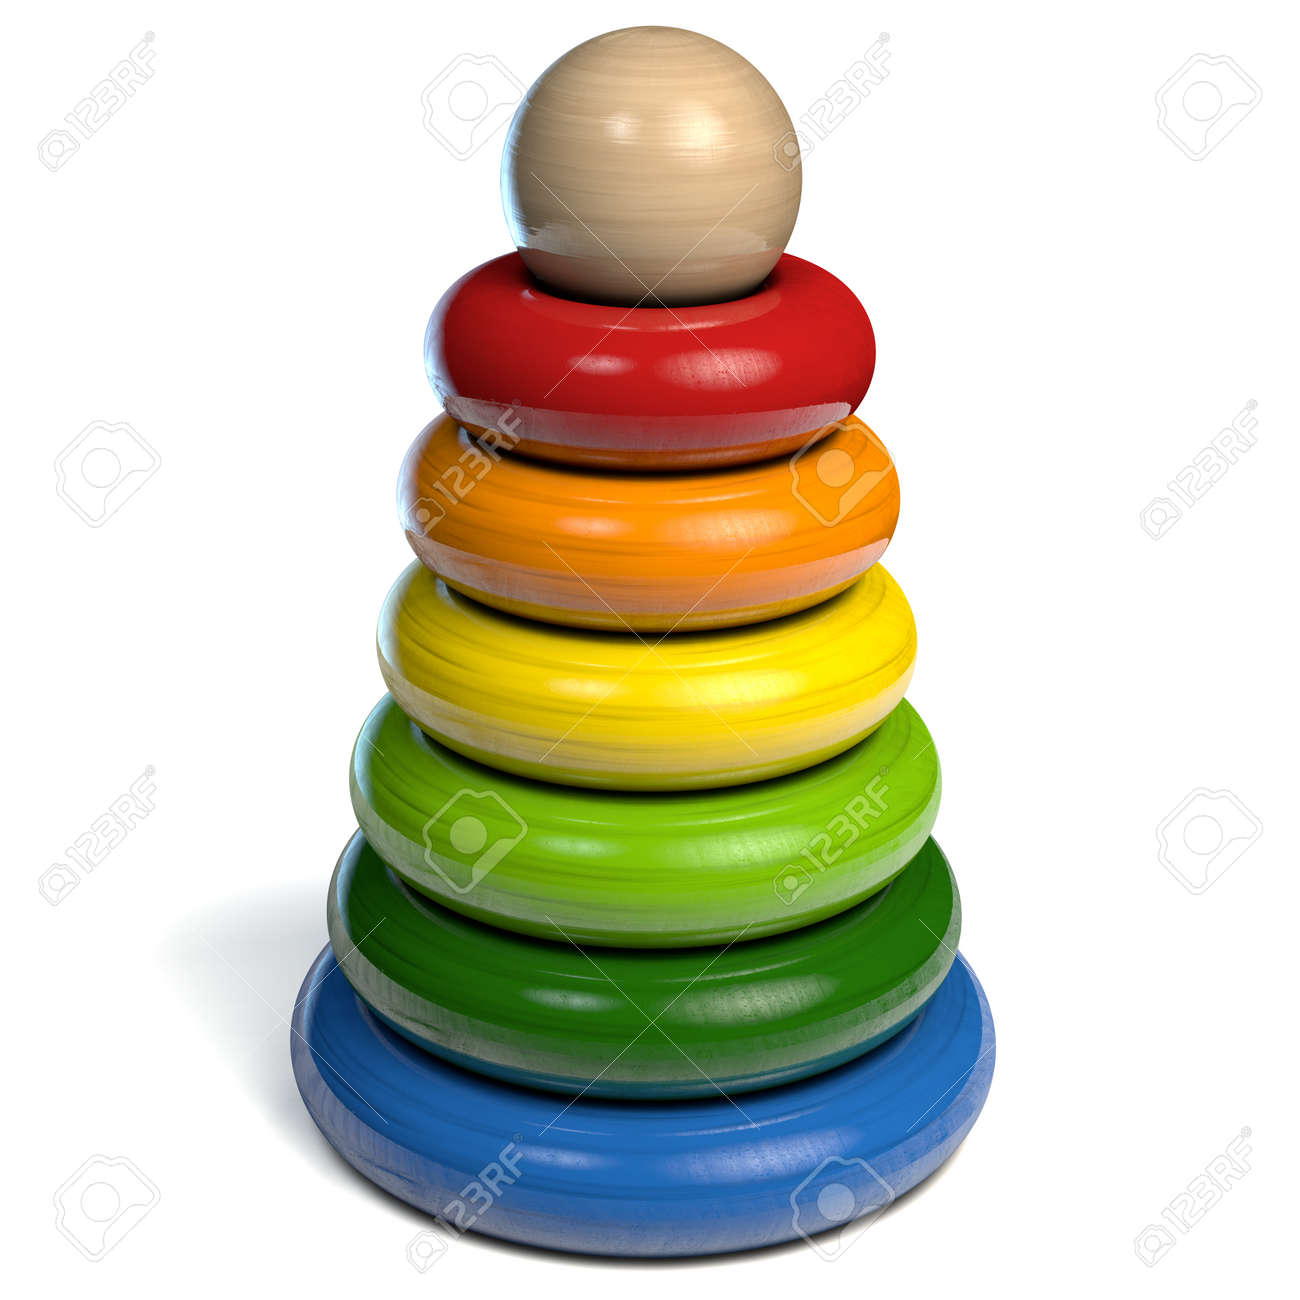 Pyramid Toy with Colored Wooden Rings with Ball on top. 3D Illustration - 141328963